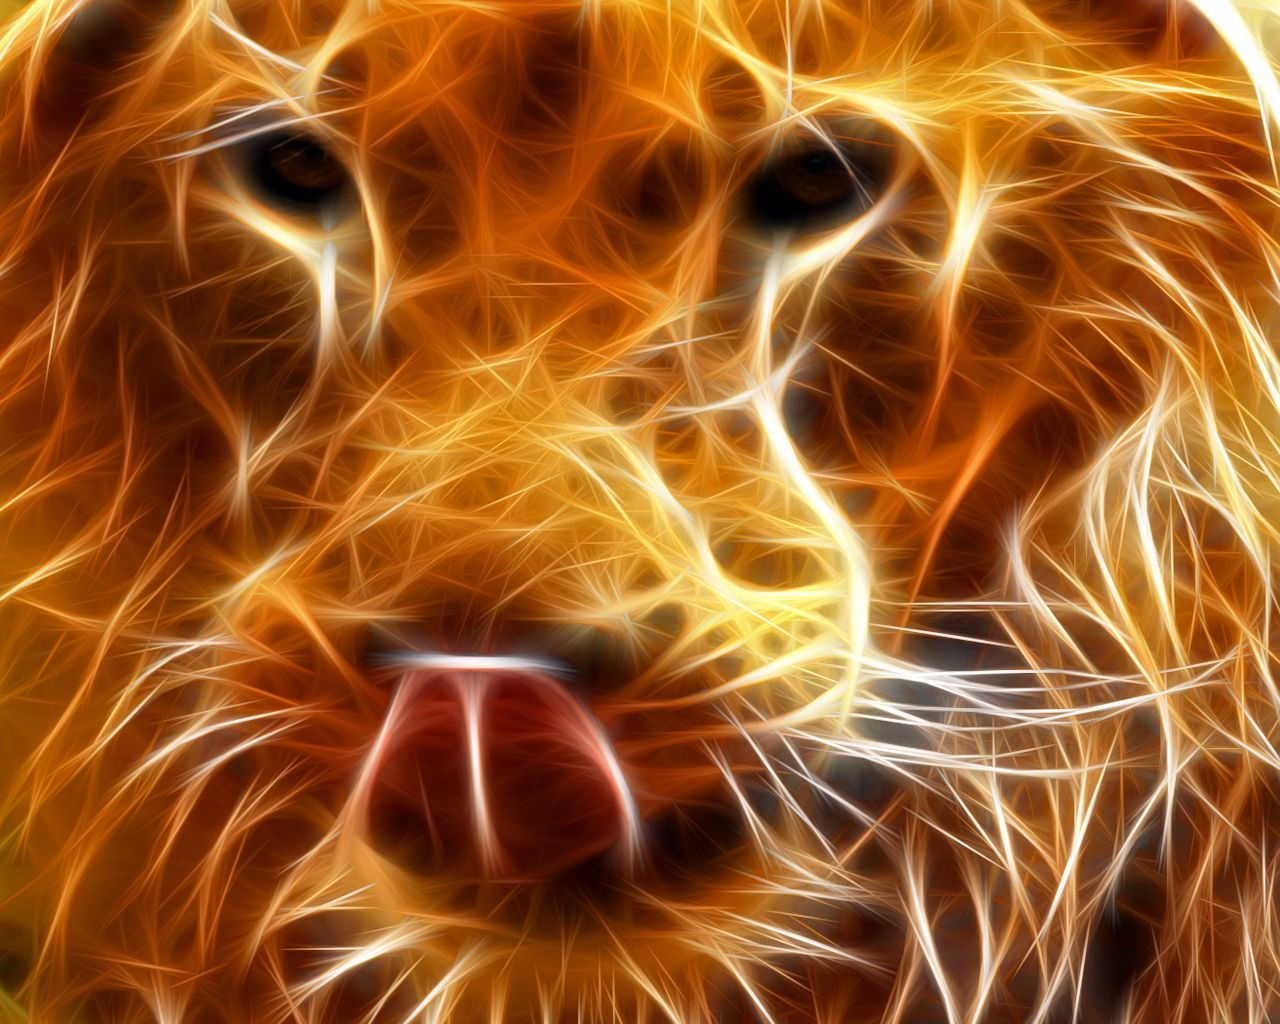 1280x1024 Fire Lion Wallpapers